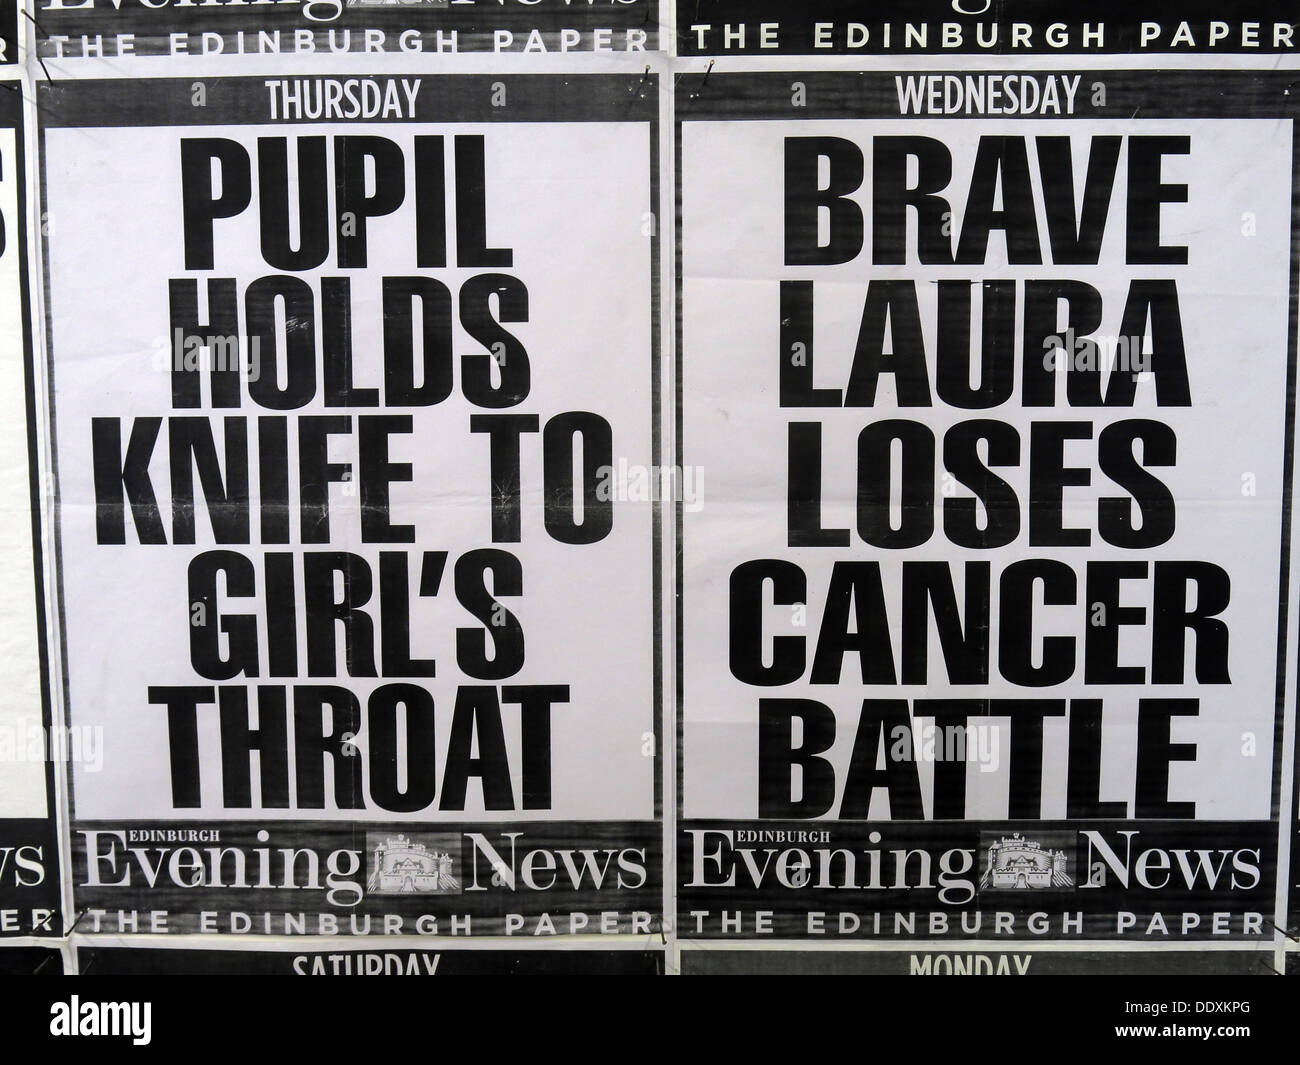 newspaper,headlines,tabloid,paper,press,media,evening,news,#edinburghartfestival,#eaf,#kennywatson,art,installation,exhibition,Scotland,UK,Edinburgh Festival,newspaper headlines,Edinburgh Evening News,The Days and Fascia,GoTonySmith,@HotpixUK,Buy Pictures of,Buy Images Of,Images of,Stock Images